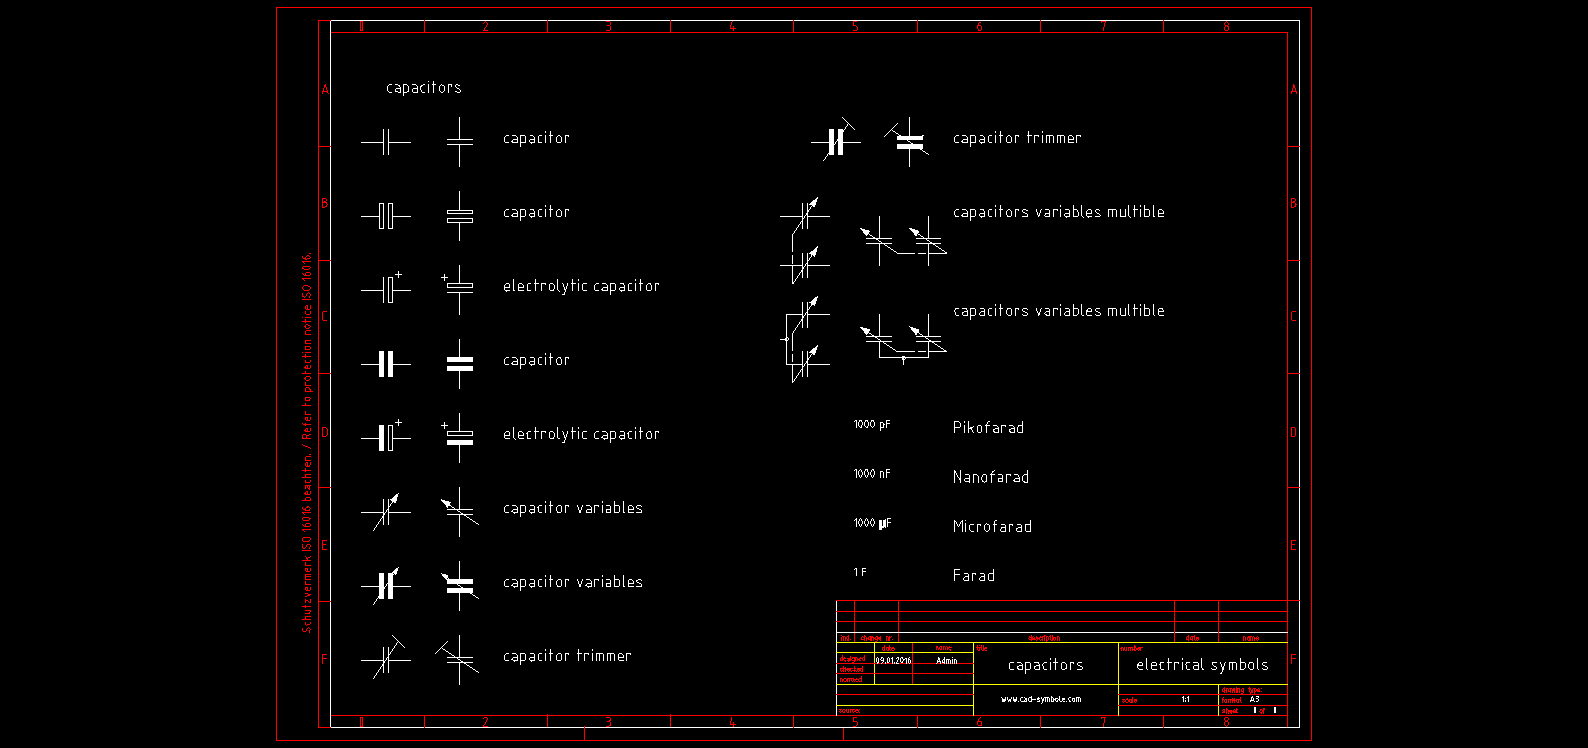 autocad electrical symbols library dwg autocad Software Wiring Diagram